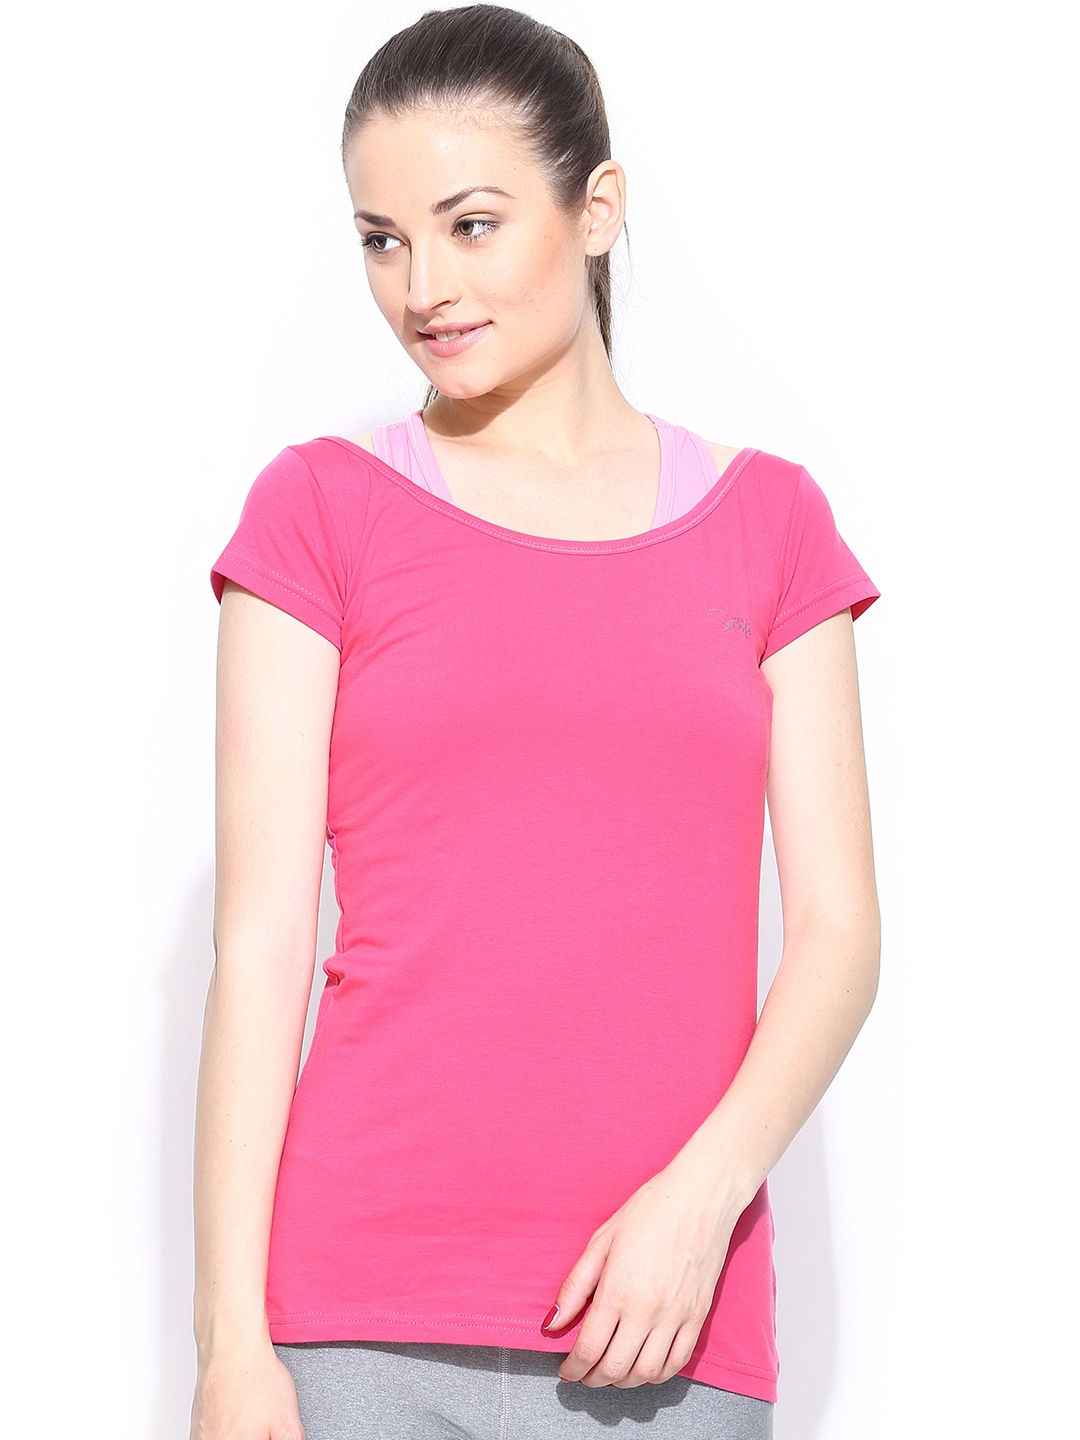 AliExpress carries many pink sports tops related products, including pink fitness summer, plain sport dress, gym wear pink, pink gym wear, sports top floral, floral sports top, sports tops pattern, running tops pattern, tight sport flower.